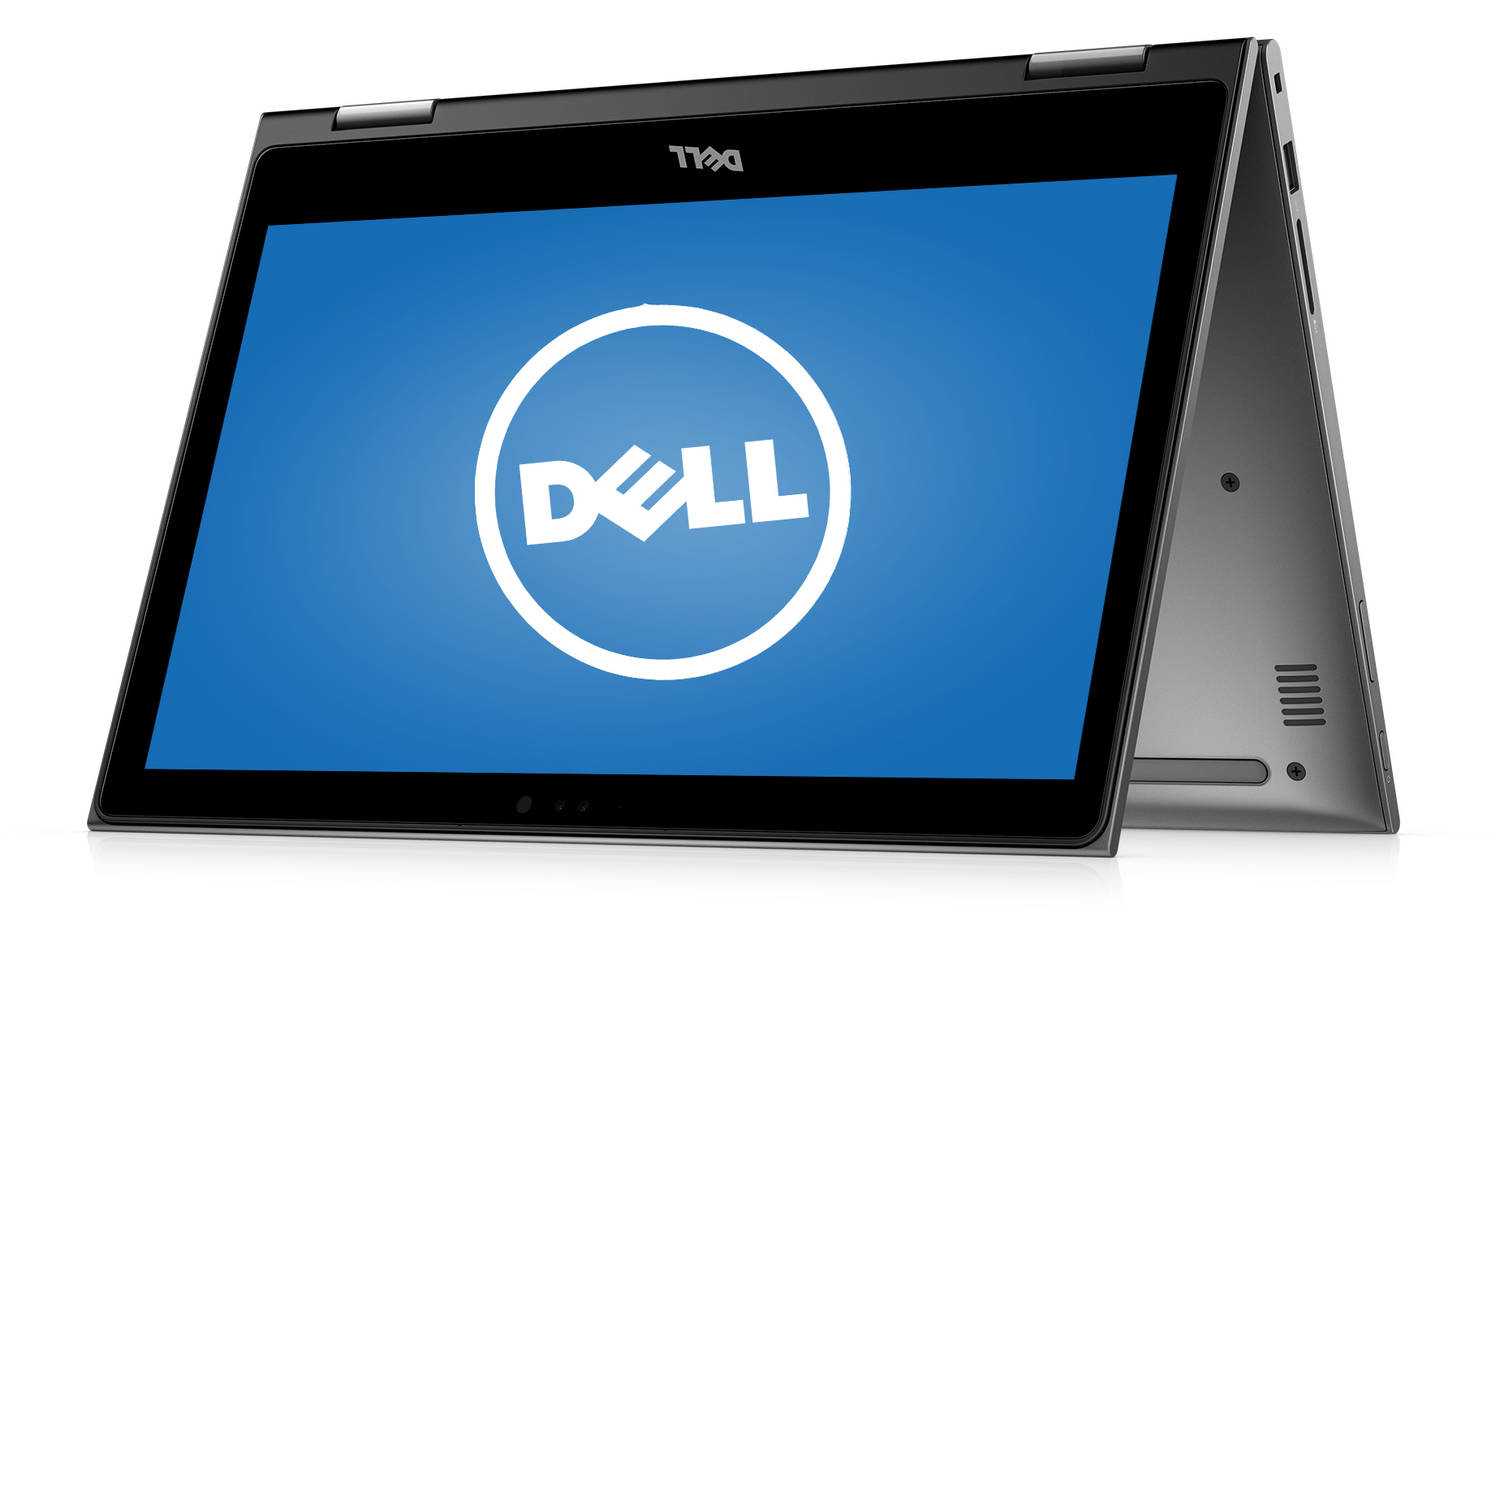 "Dell Gray 13.3"" Inspiron 13 5000 i5368-10024GRY Laptop PC with Intel Core i7-6500U Processor, 8GB Memory, touch screen, 256GB Solid State Drive and Windows 10 Home"